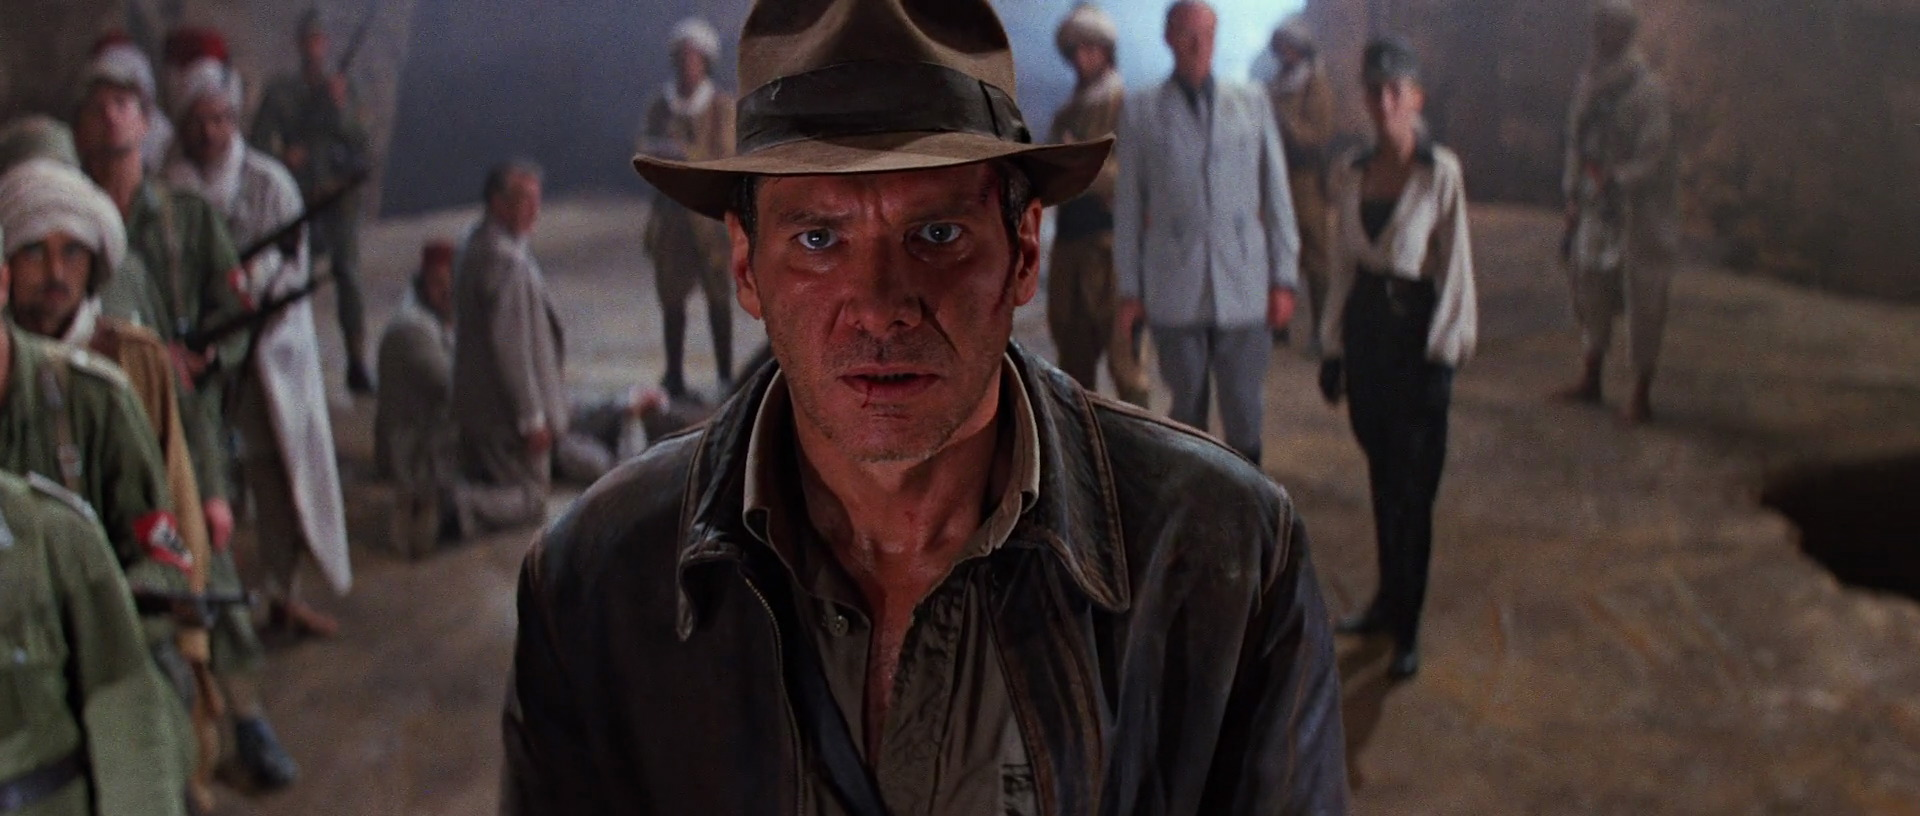 Indiana Jones And The Last Crusade Movie Review Focused